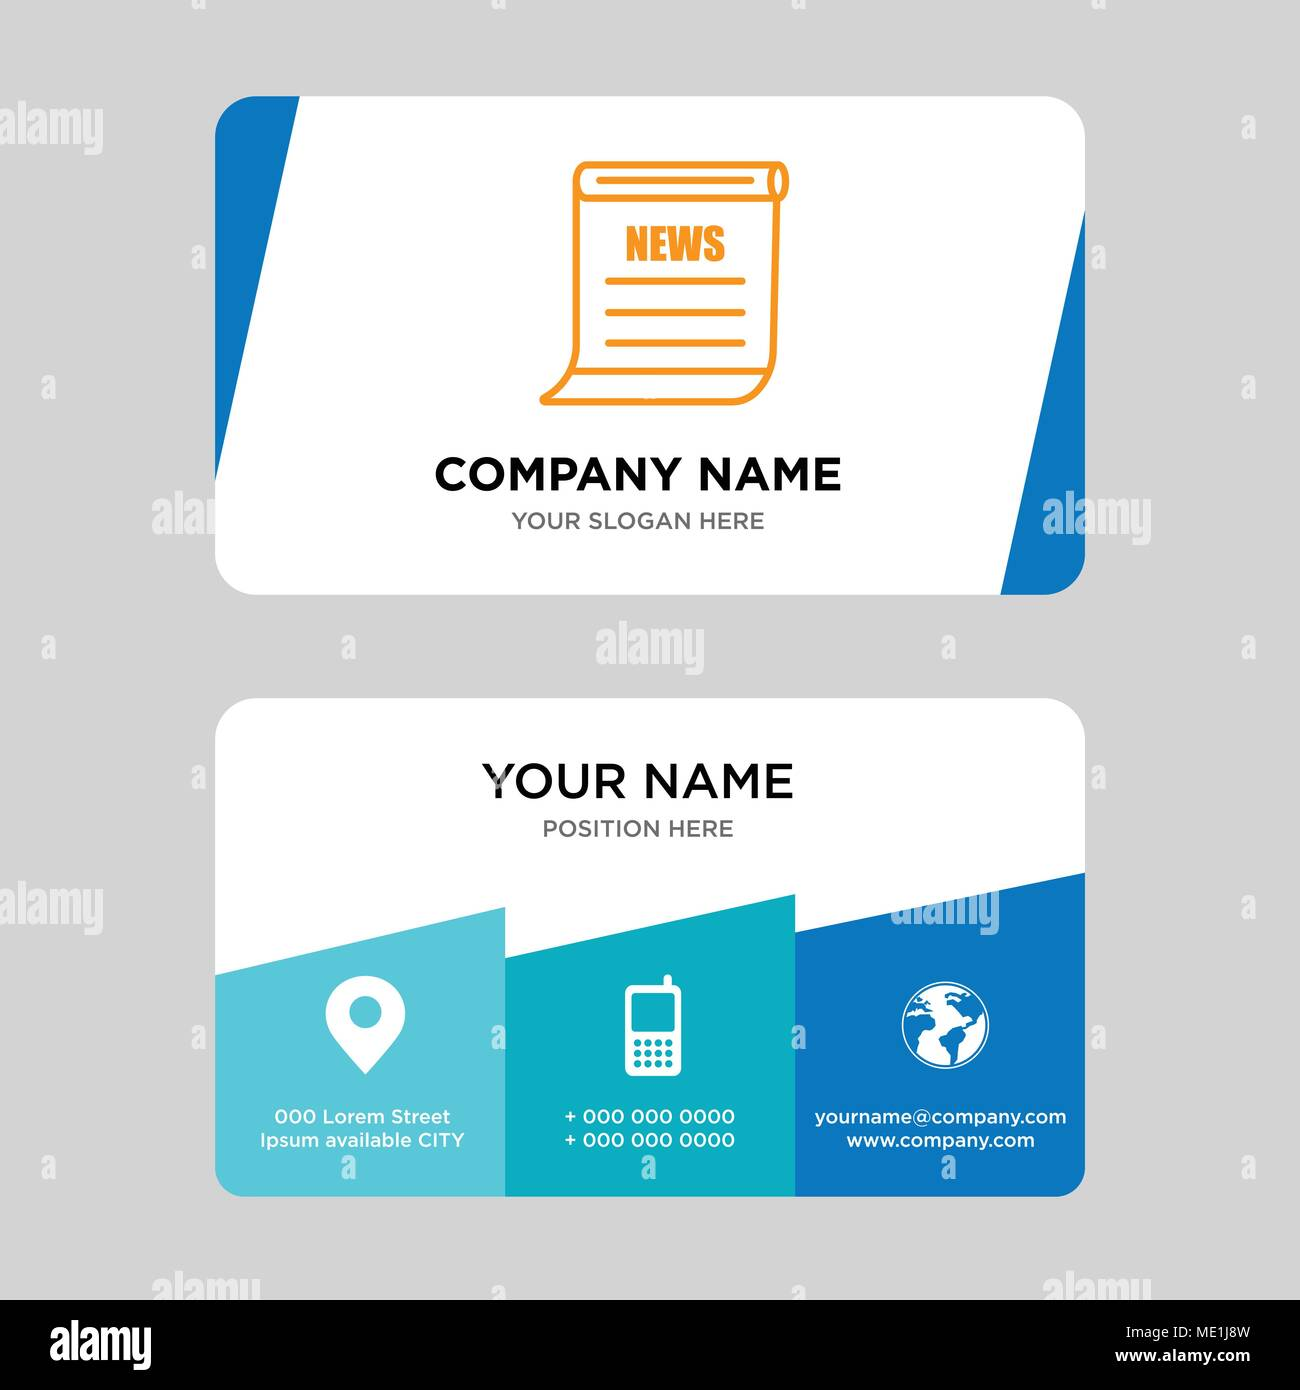 newspaper business card design template, Visiting for your company ...